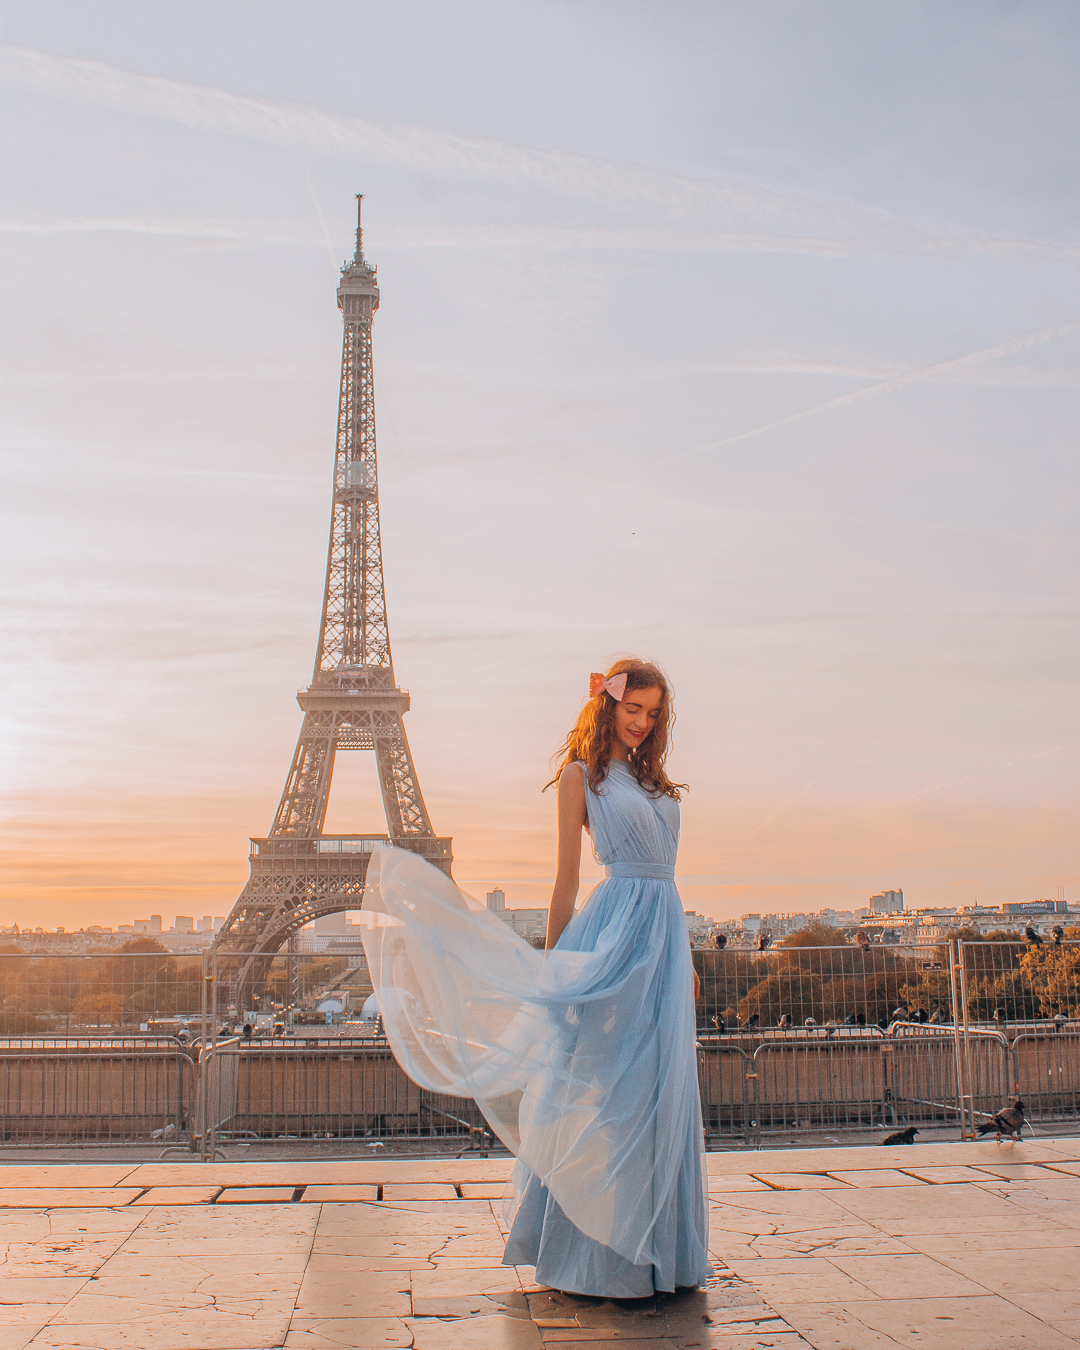 Swirling dress in front of the Eiffel Tower